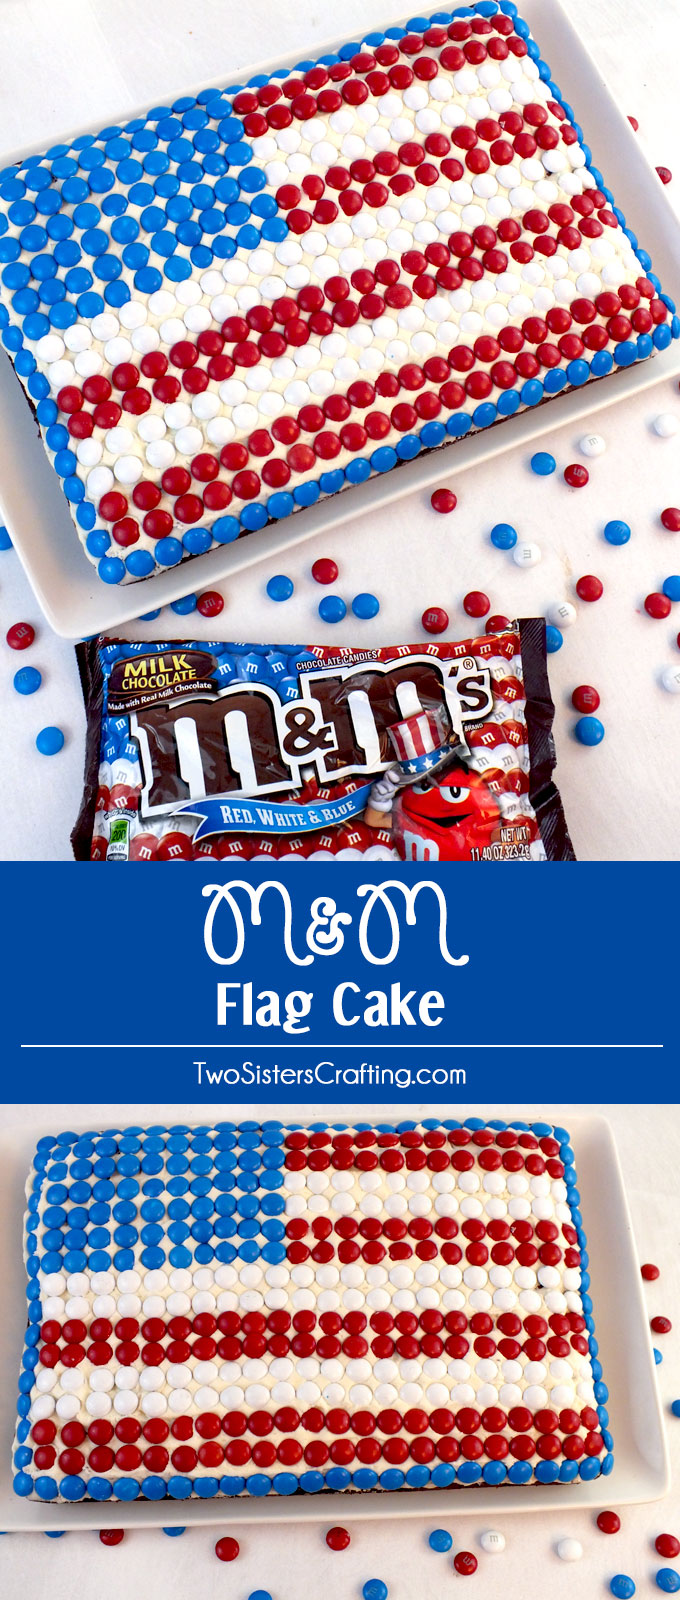 This M&M Flag Cake could not be easier to decorate and it is a great last minute dessert for a 4th of July party, a Memorial Day BBQ or an Olympics viewing party. Pin this great 4th of July treat for later and follow us for more fun and patriotic 4th of July Food Ideas.